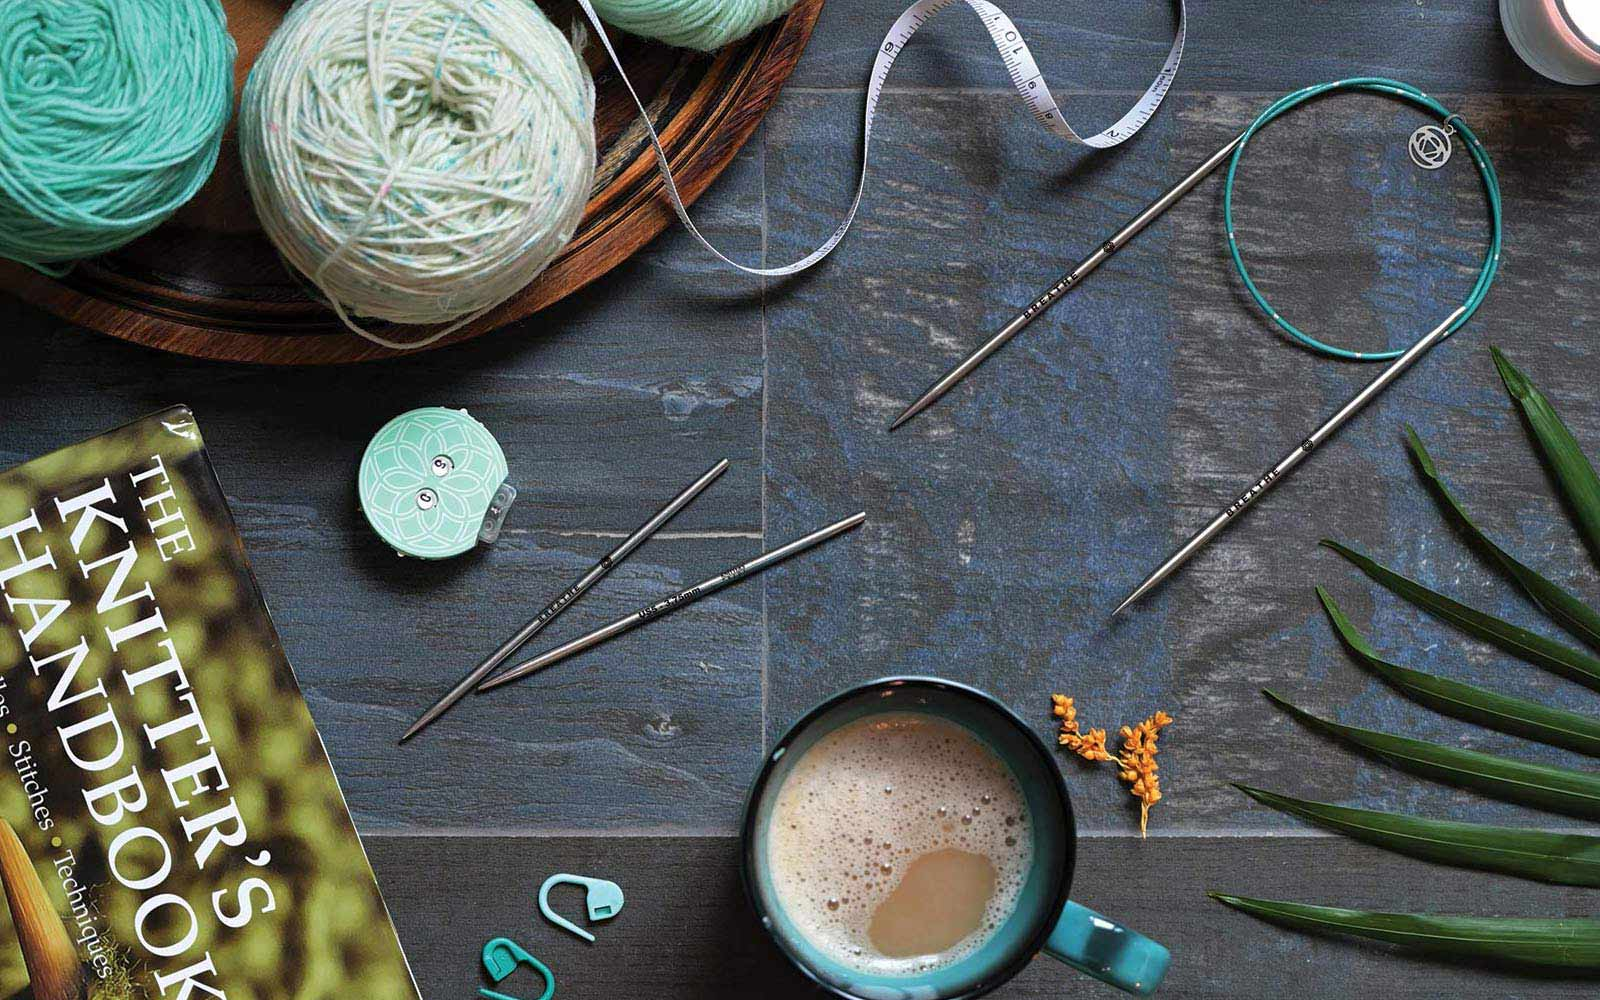 Mindful interchangeable knitting needles, Stitch Markers, tape measure and Knitter's Handbook from Knitter's Pride Mindful Collection displayed with a cup of coffee and teal balls of yarn.